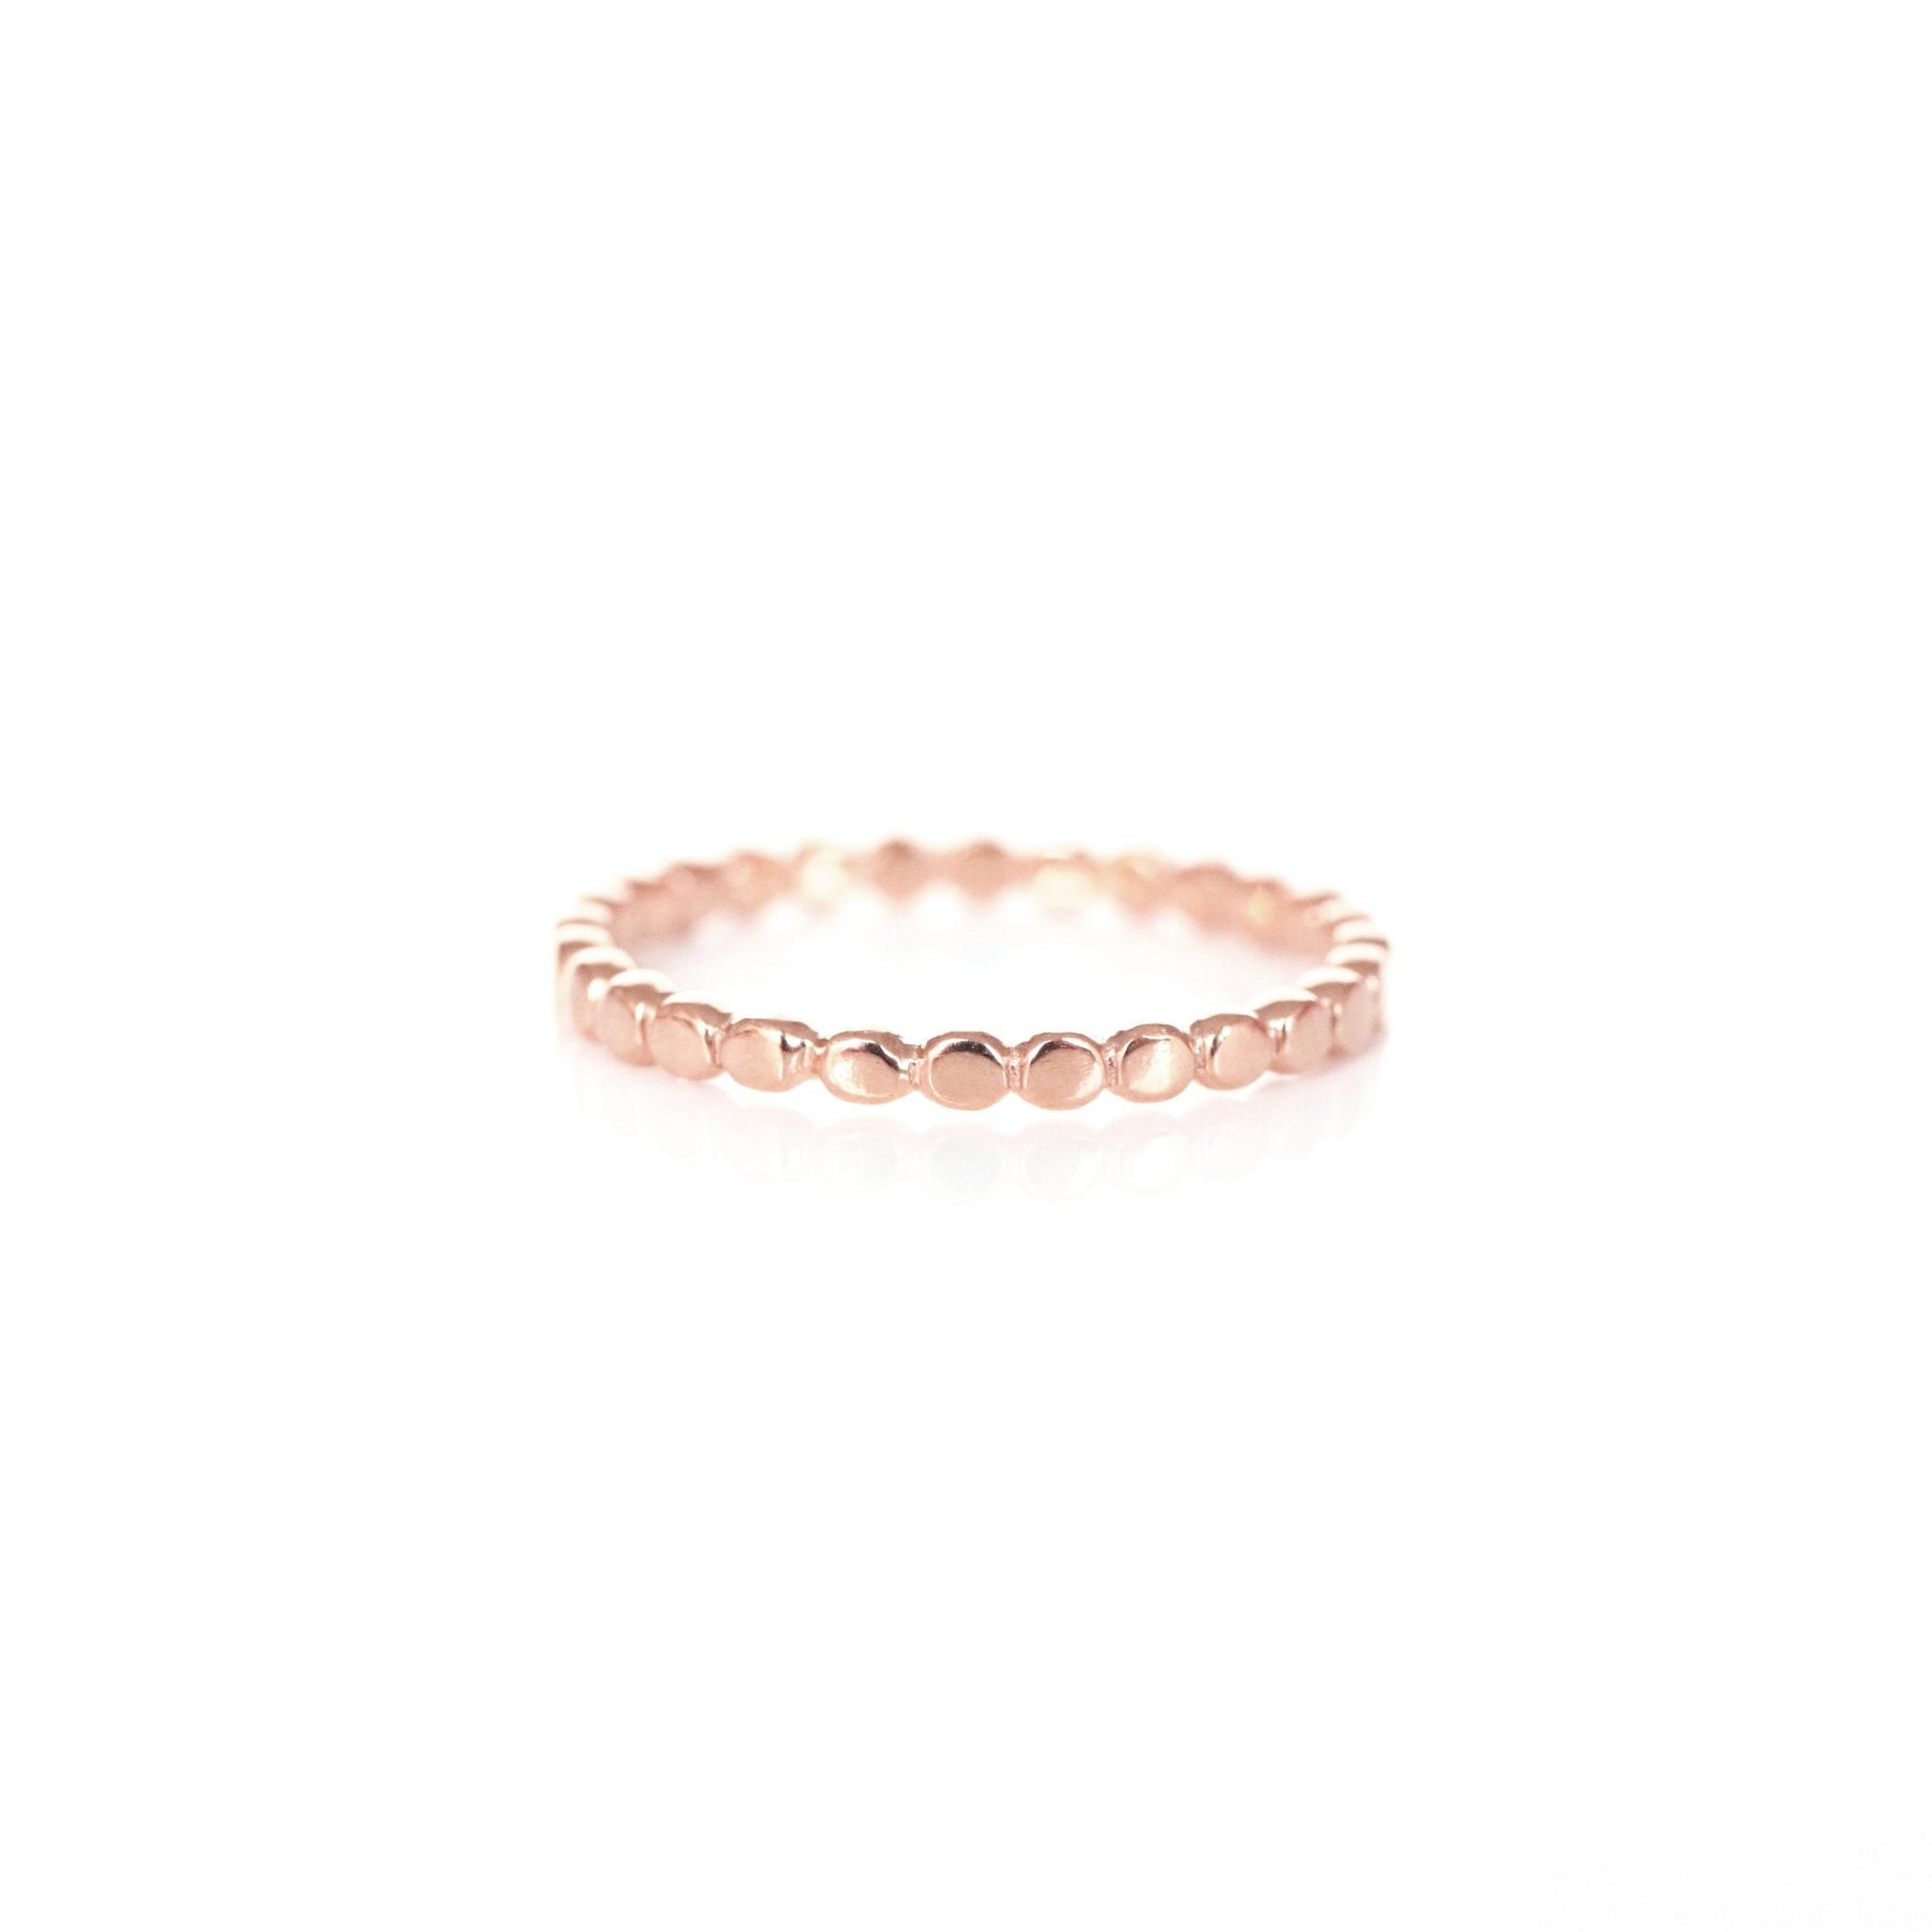 POISE THIN DISK BAND RING - ROSE GOLD - SO PRETTY CARA COTTER